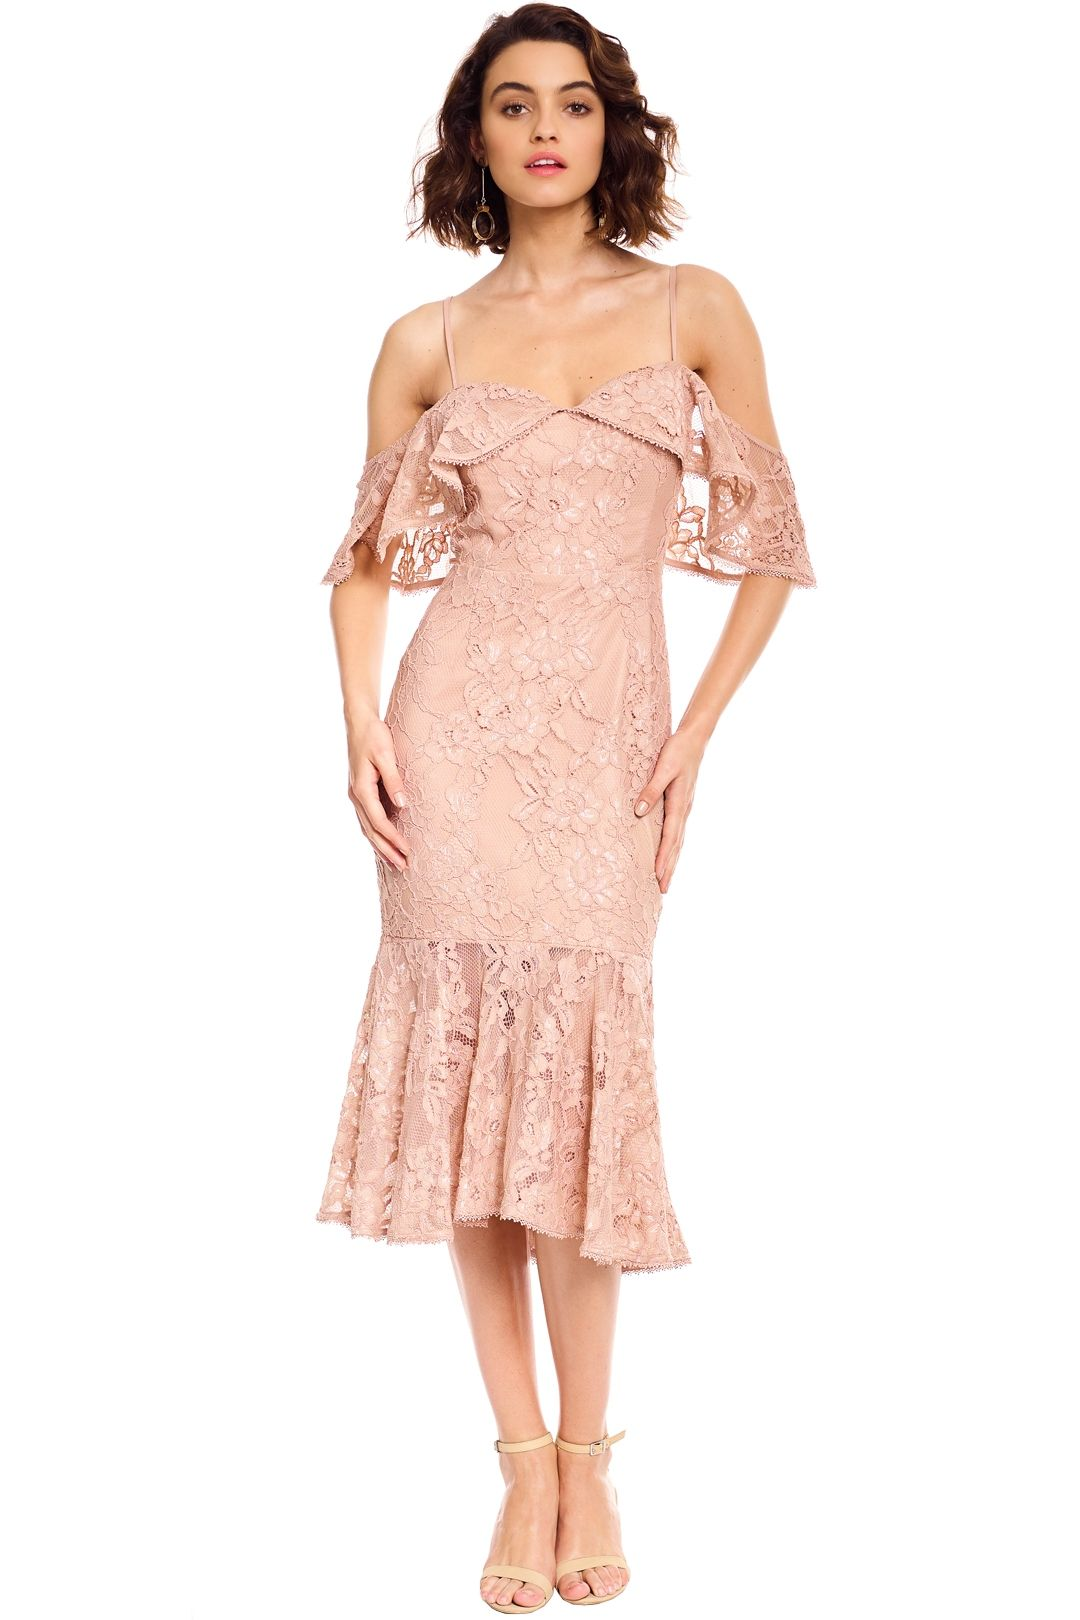 Rodeo Show - Manuela Lace Dress - Nude - Front